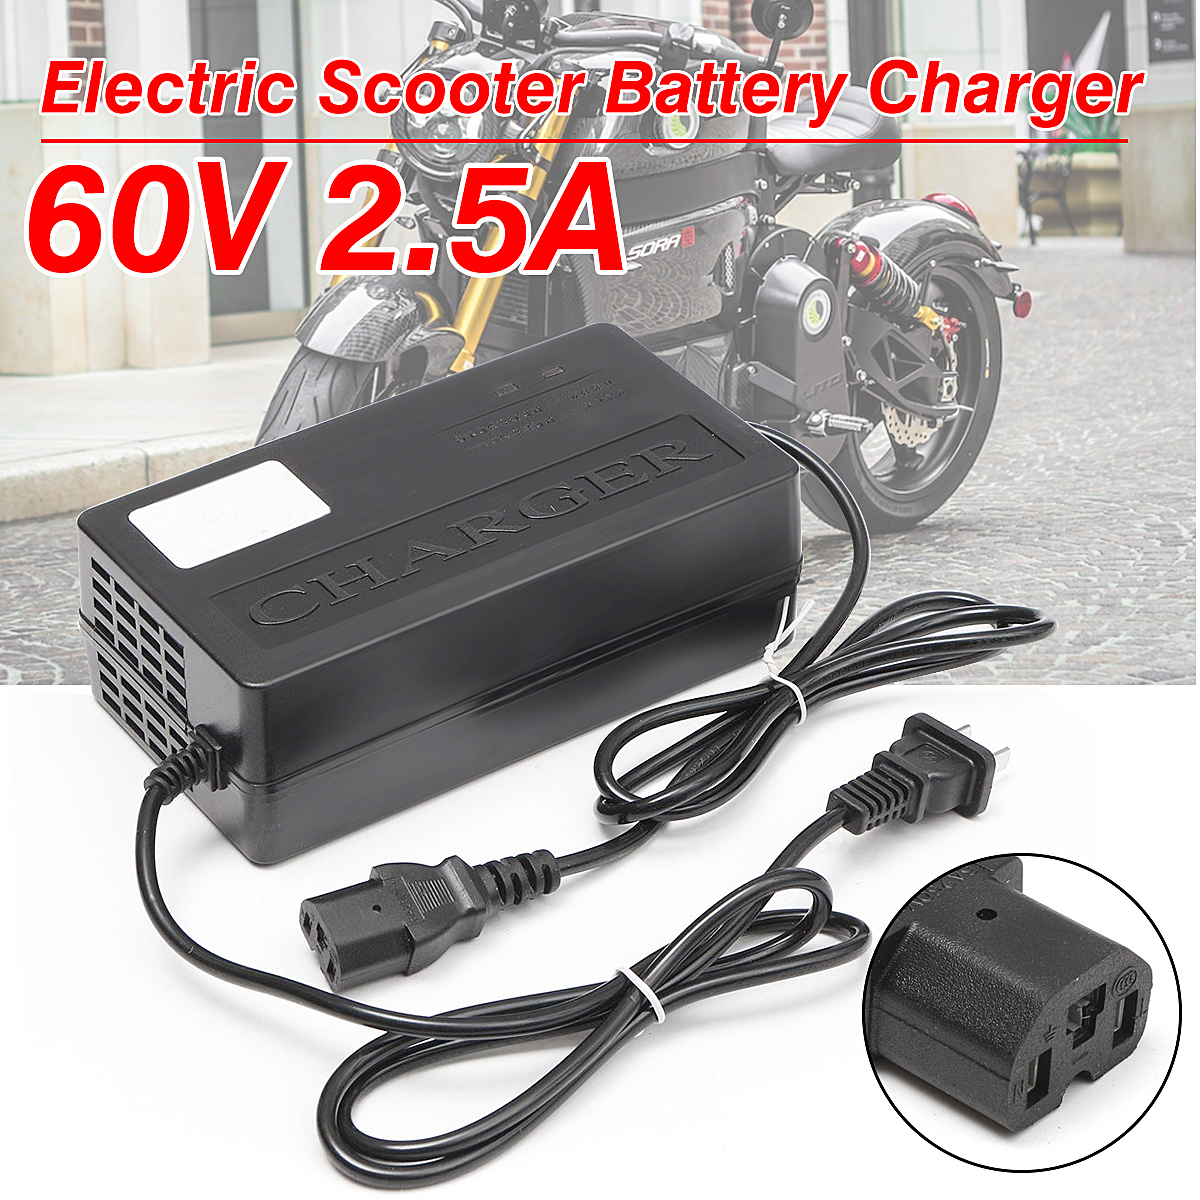 60V 2.5A Battery Charger Adapter For Electric Scooter E-bike Power PC Plug